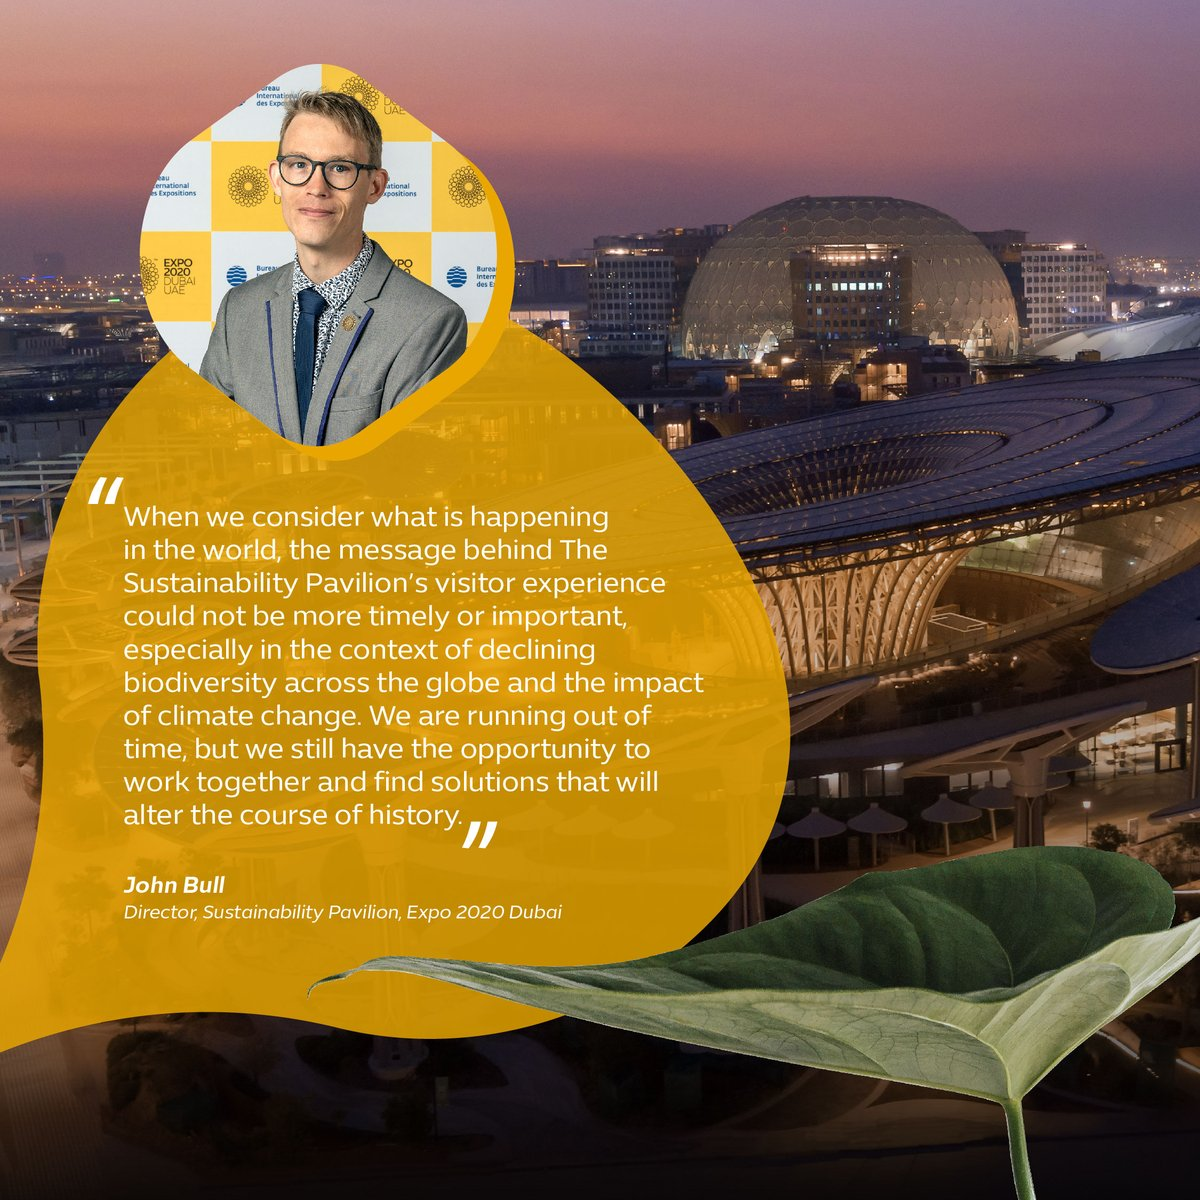 John Bull, Director of the Sustainability Pavilion at Expo 2020 Dubai, discusses how the pavilion and its visitor experience can encourage collaboration and positive action. #Expo2020 #Dubai #UAE https://t.co/8yvqrwpKNE